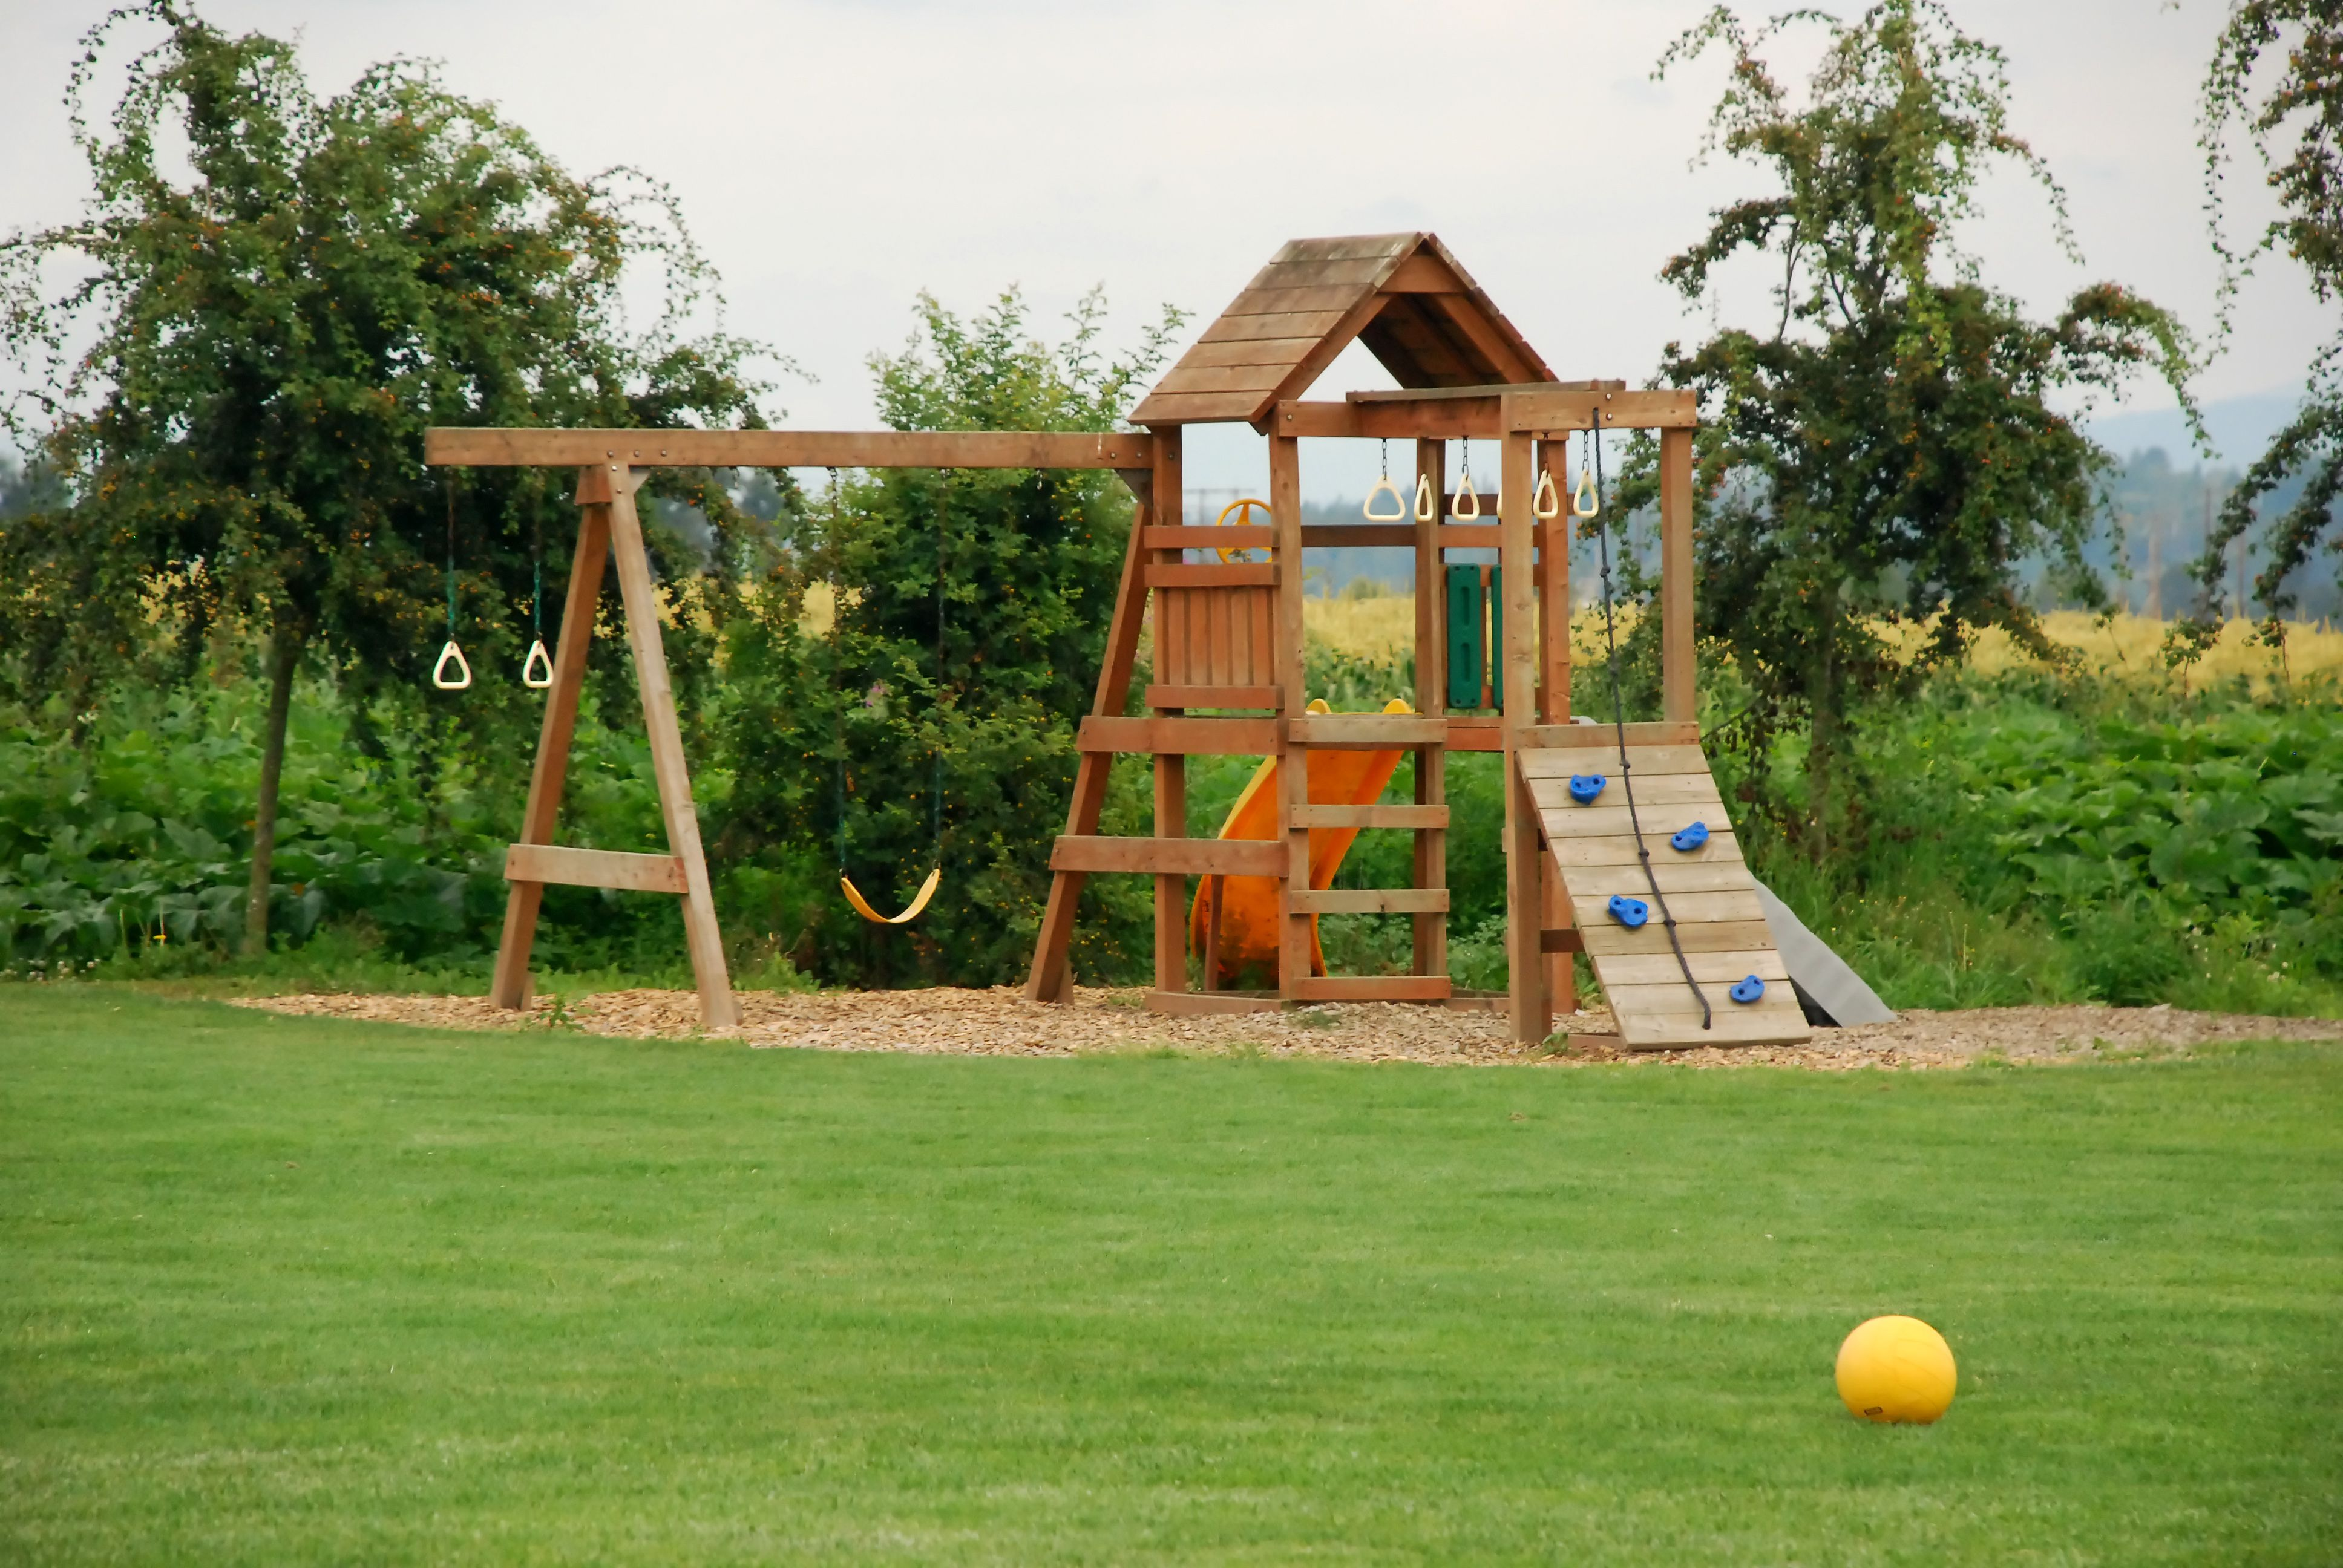 Backyard Playground Best Ground Cover Options Play Area Backyard Backyard Play Playground Flooring Outdoor